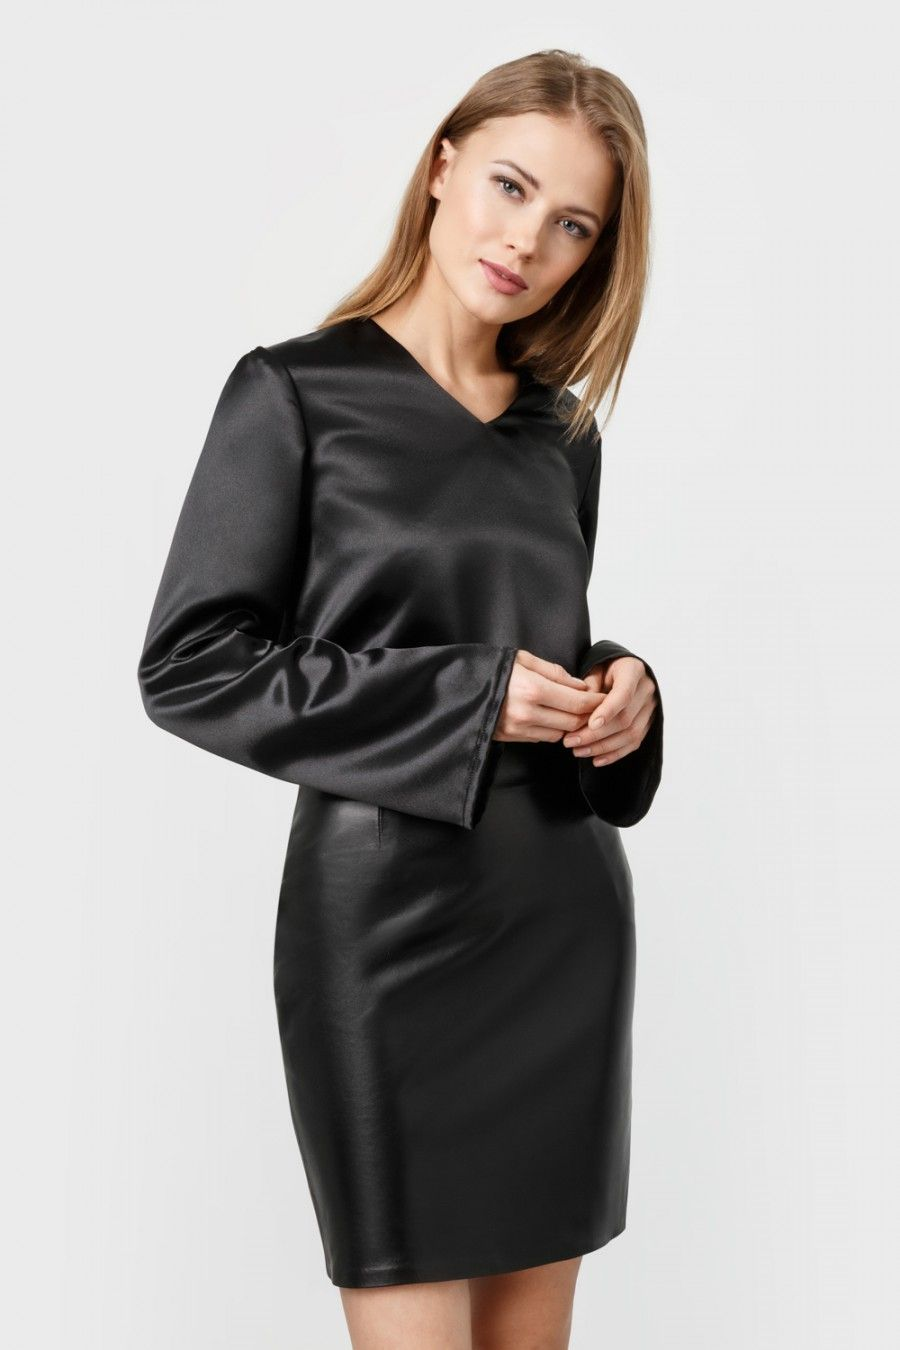 Black satin long-sleeved T-shirt blouse and leather skirt ...